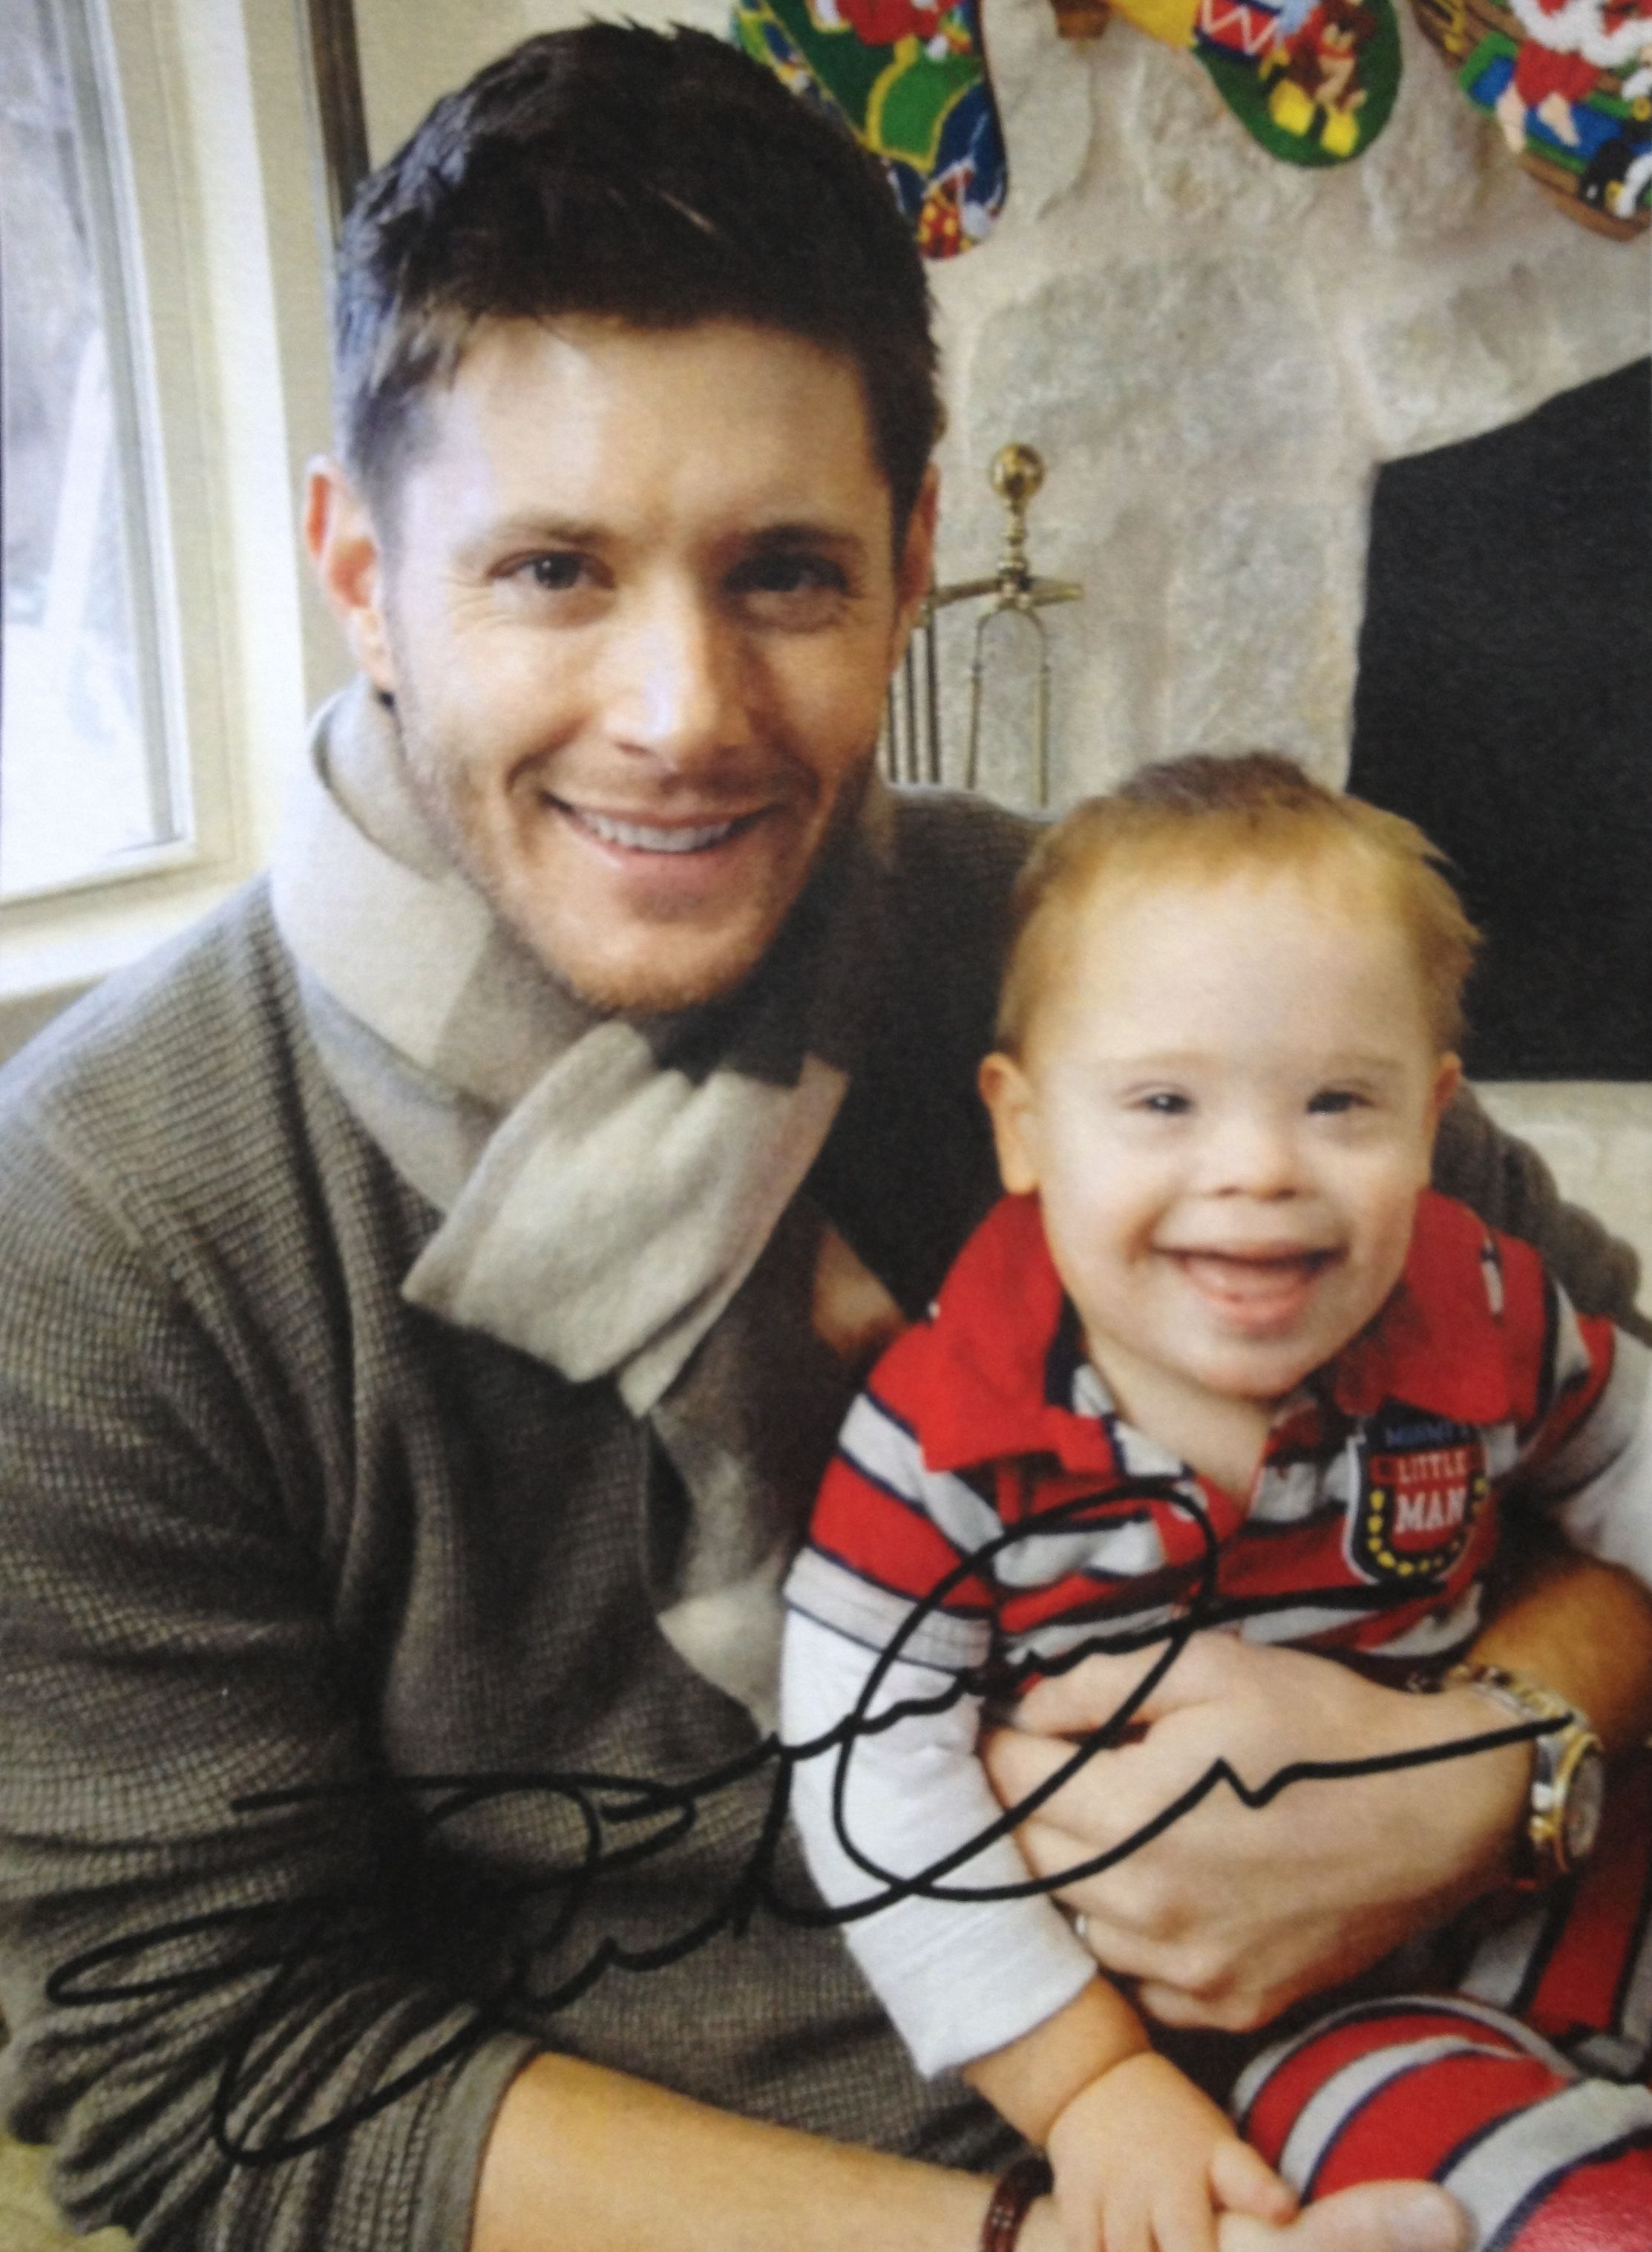 donate to team levi nephew of jensen ackles and the down